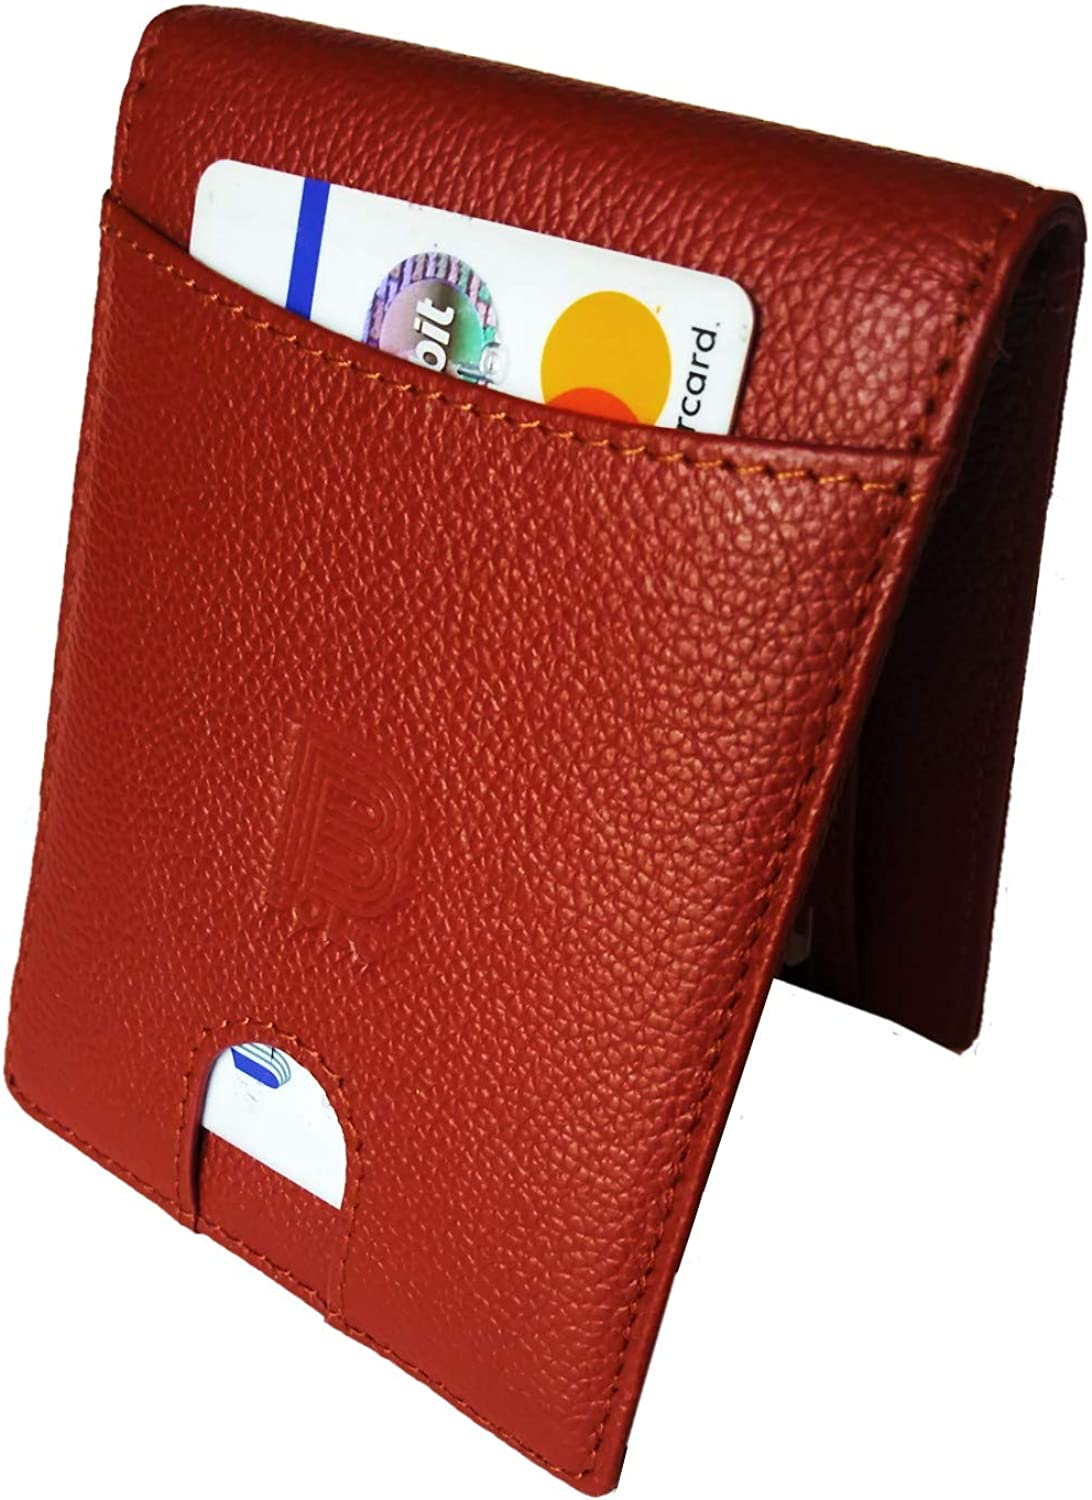 NEW 2019 Men's Wallet Slim Full Grain Leather, RFID blocking with money clip and zipper coin pocket, Los Sierra by BOLO